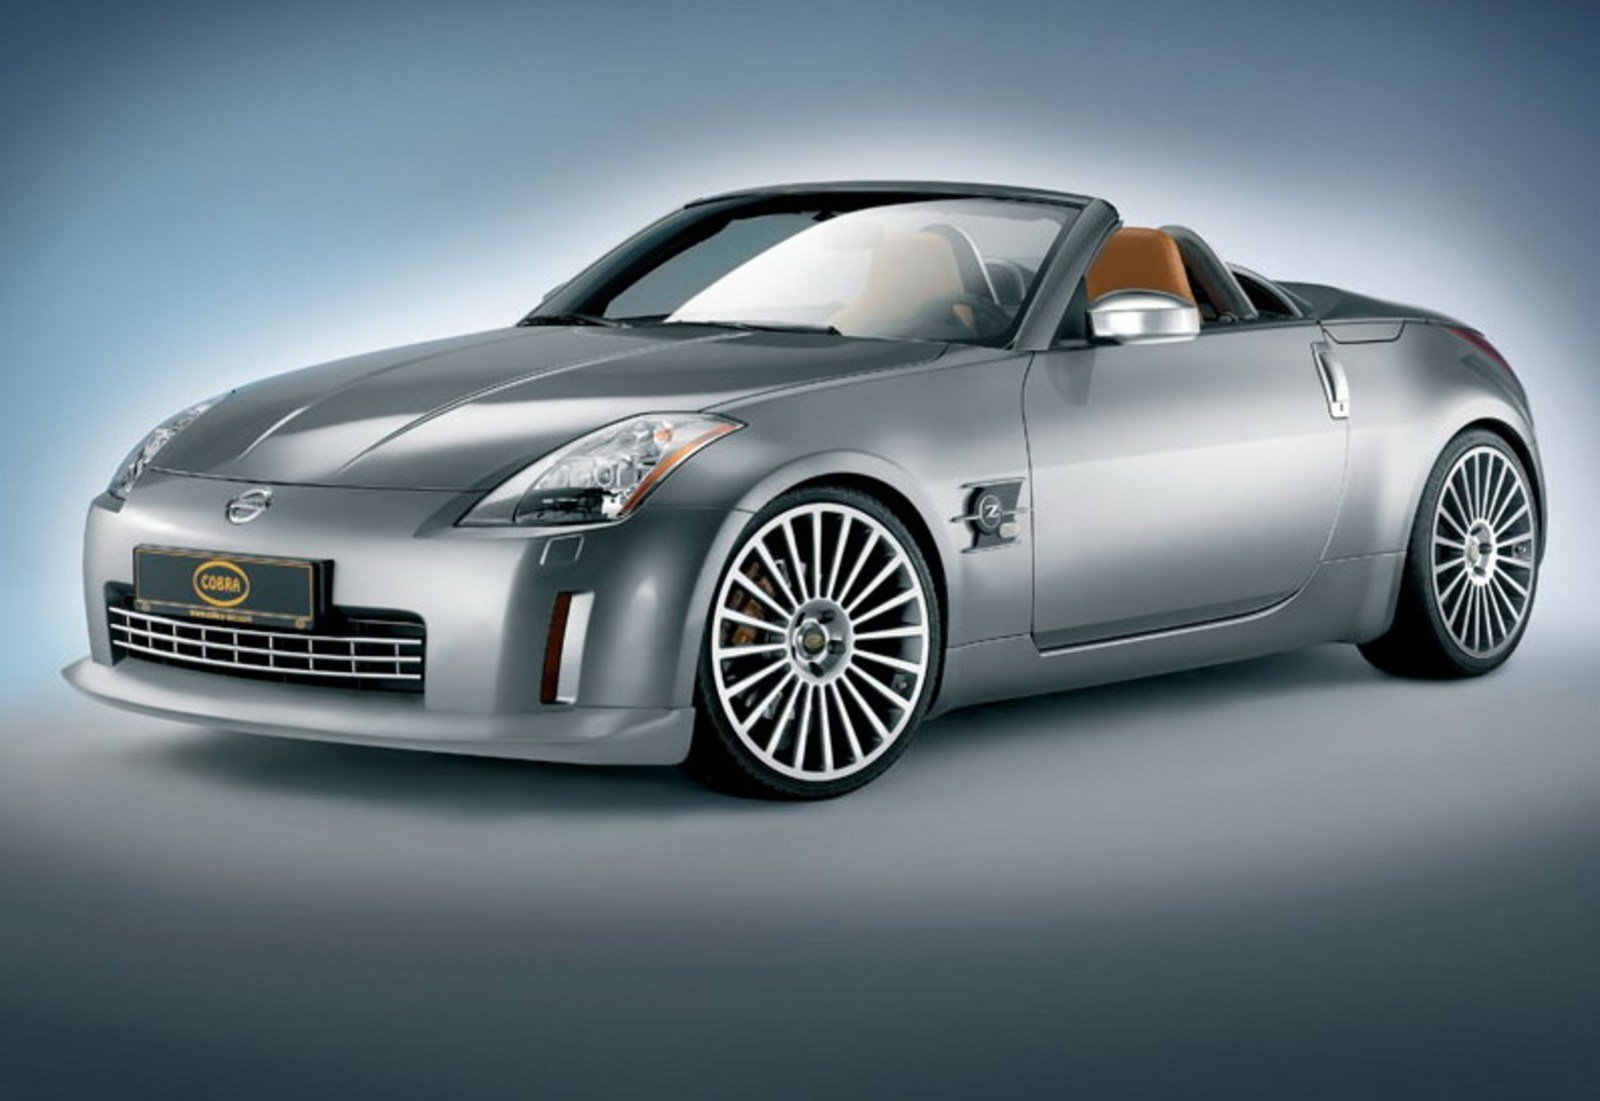 Superior 2006 Nissan 350Z Roadster